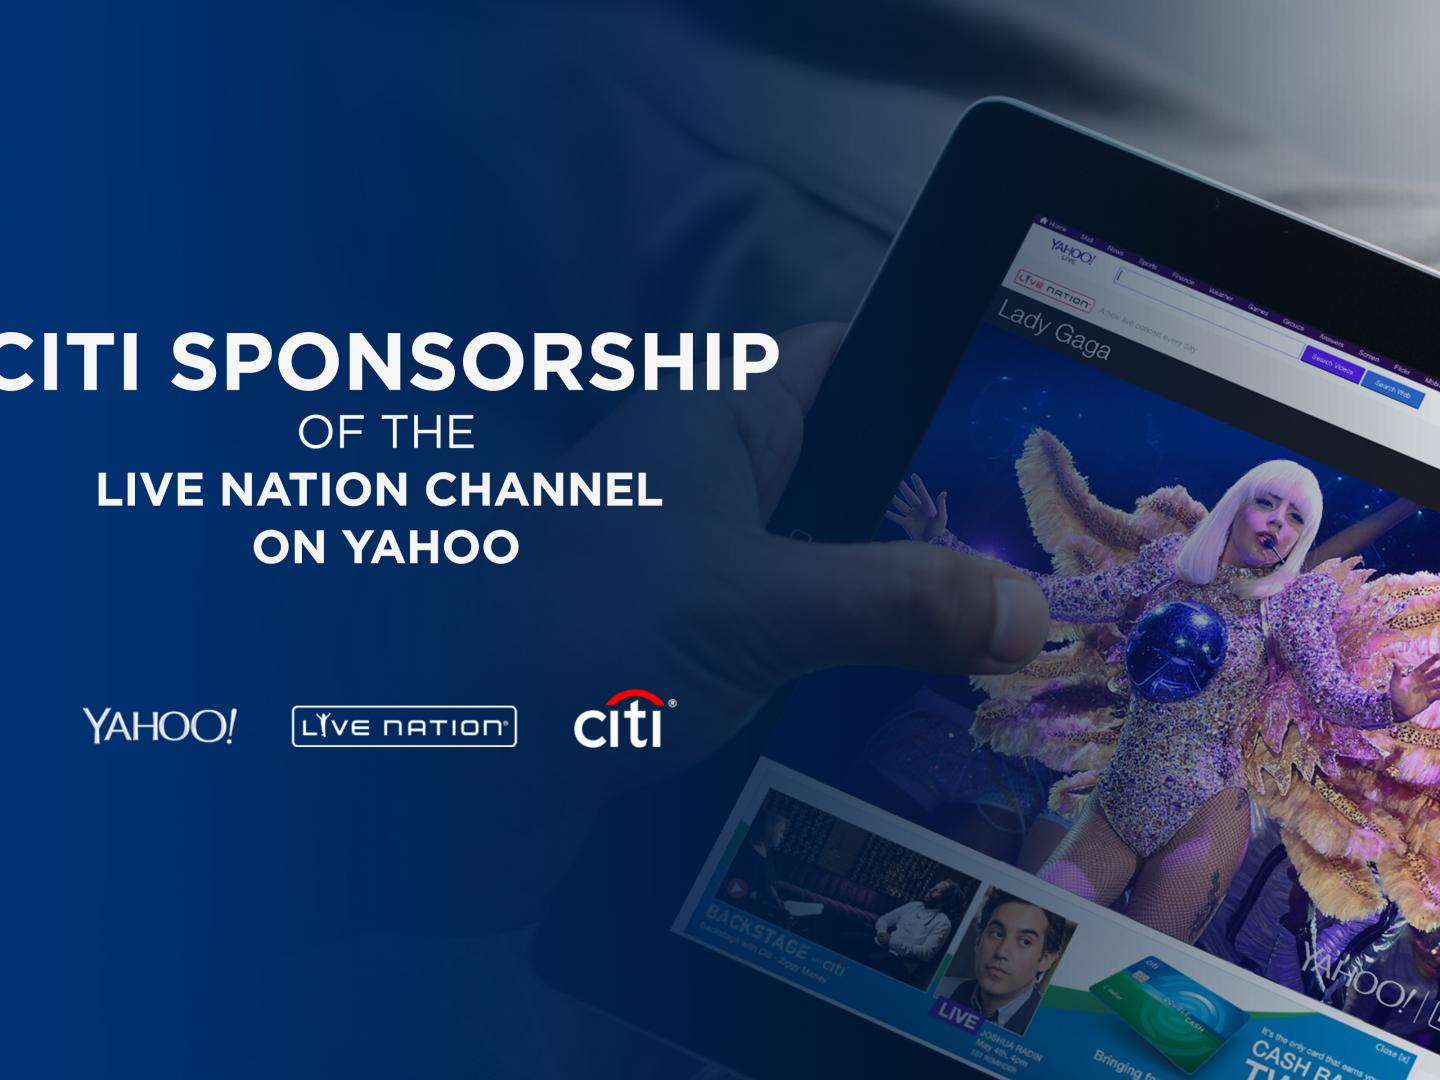 Citi Sponsorship of Live Nation Channel on Yahoo Thumbnail